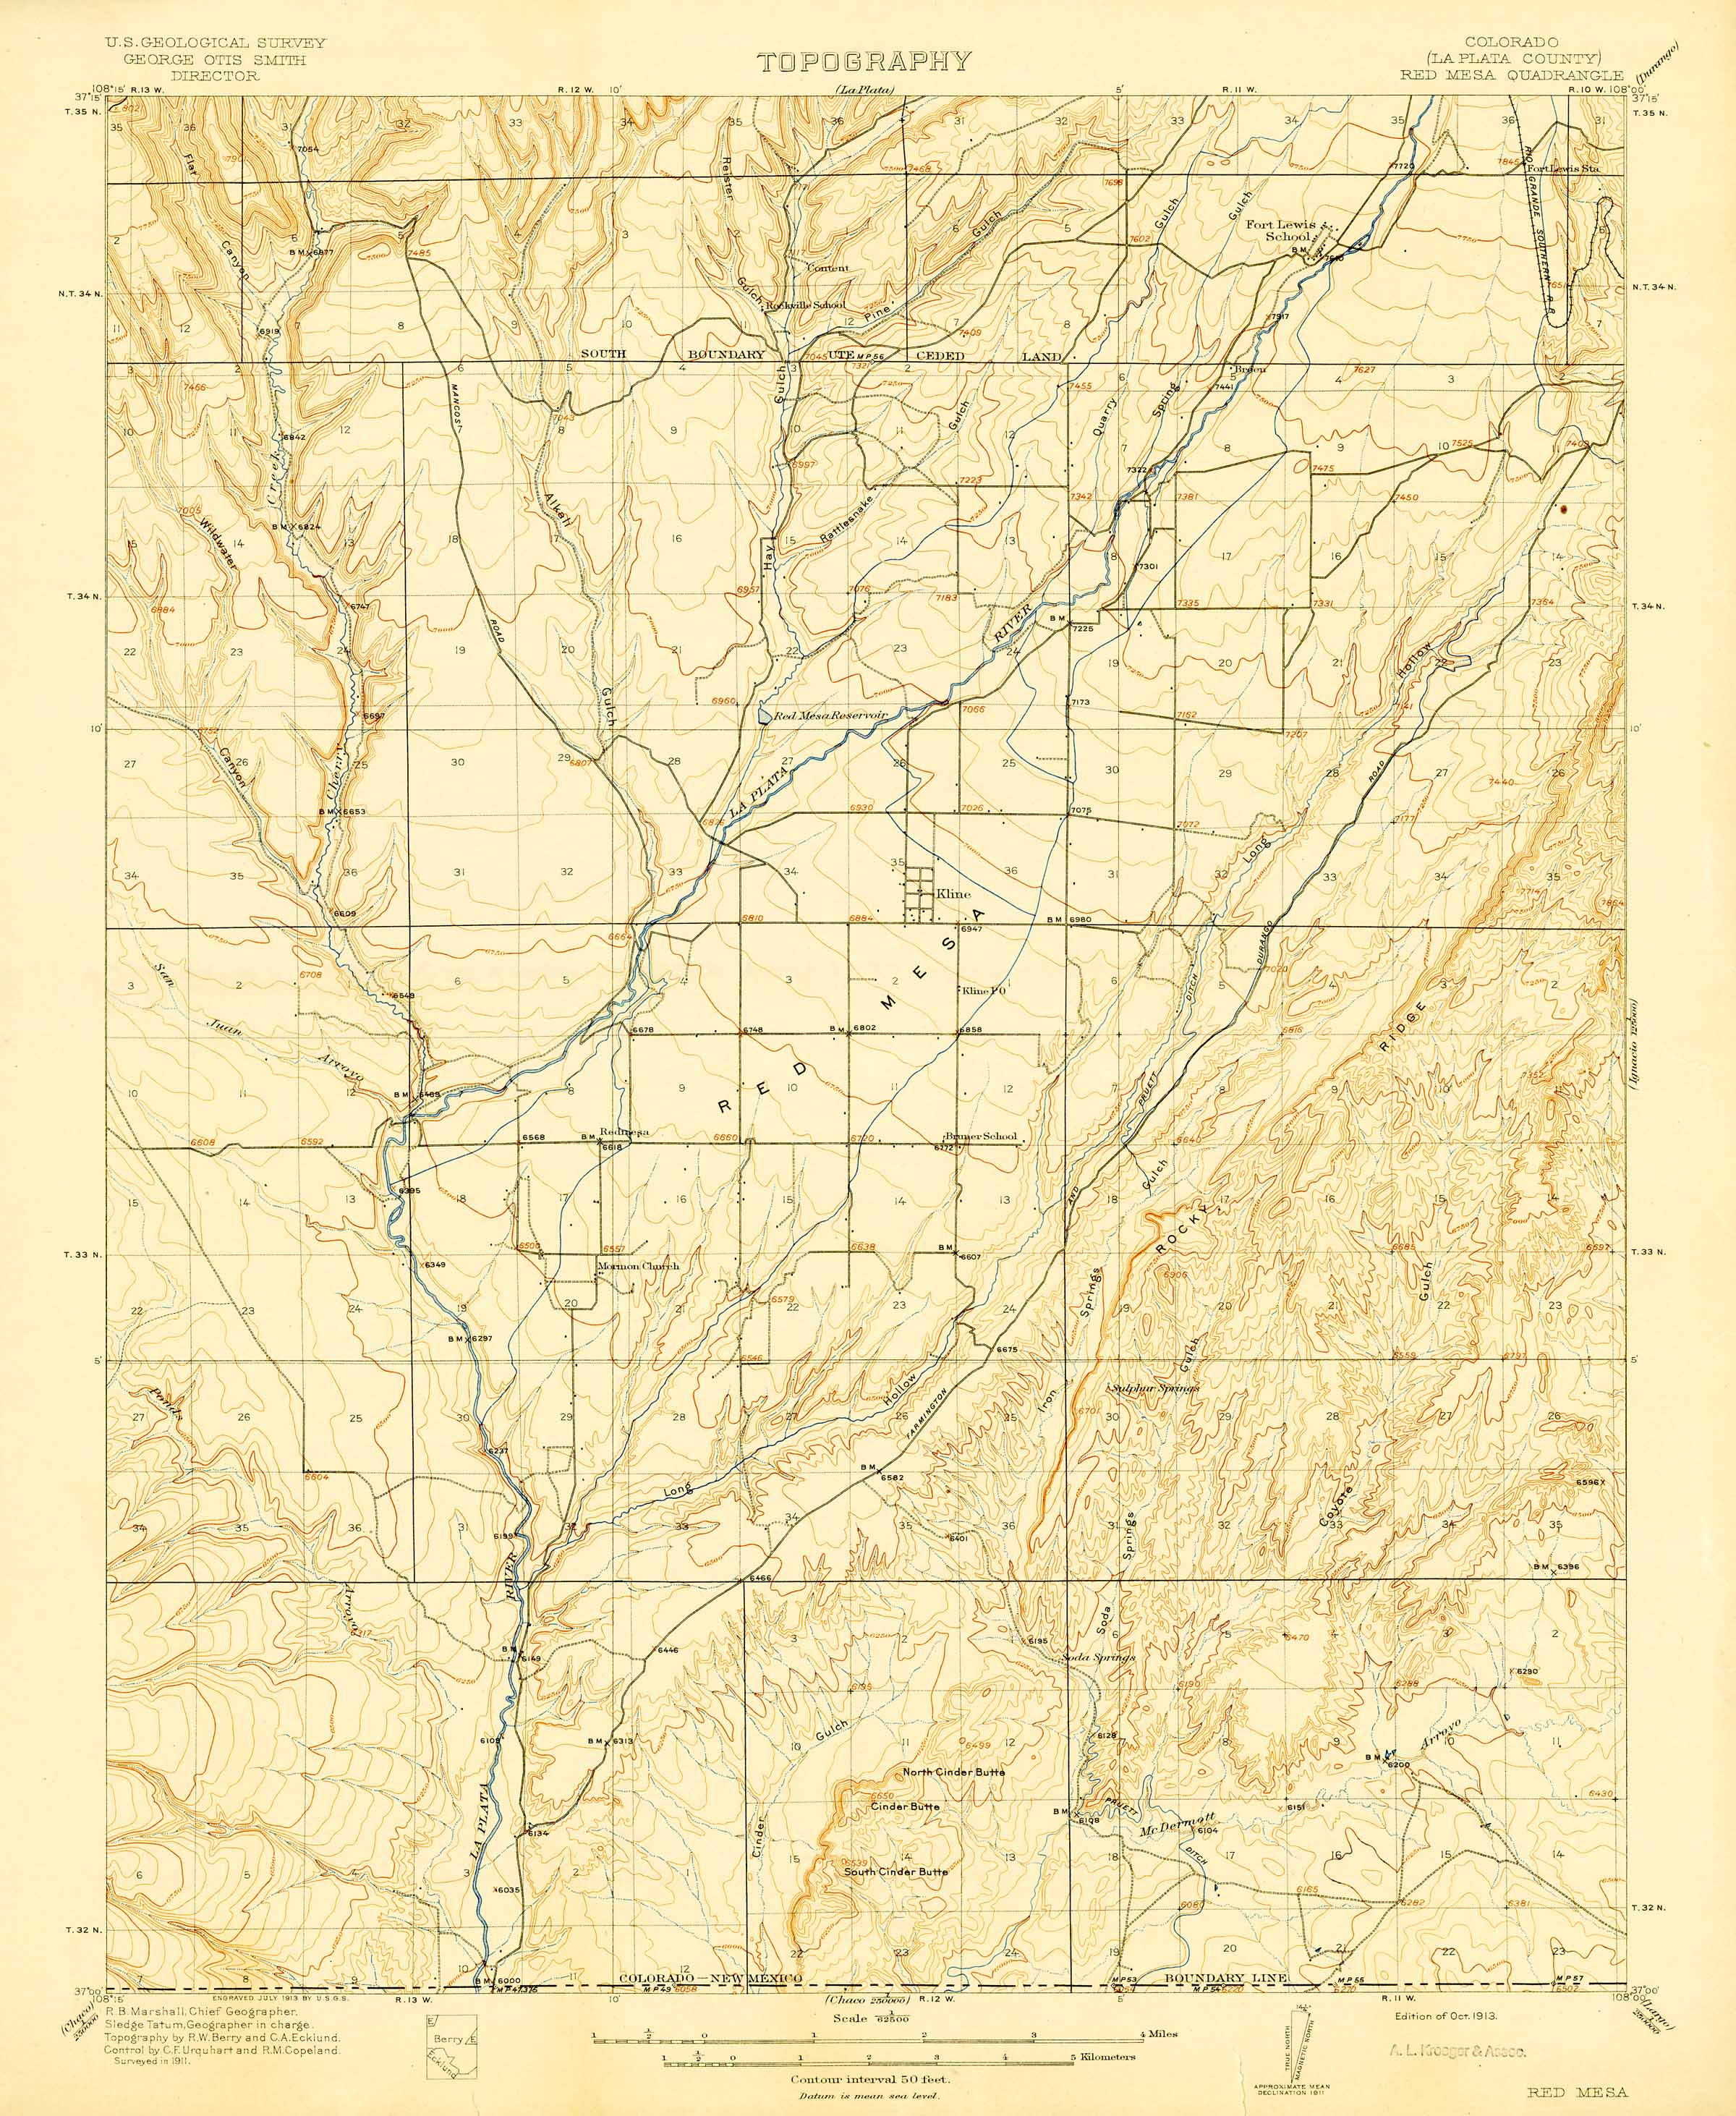 Collection c 007 usgs topographic map of red mesa co at the this map forms part of the southwest us geological survey maps collection collection c 007 at the center of southwest studies publicscrutiny Images